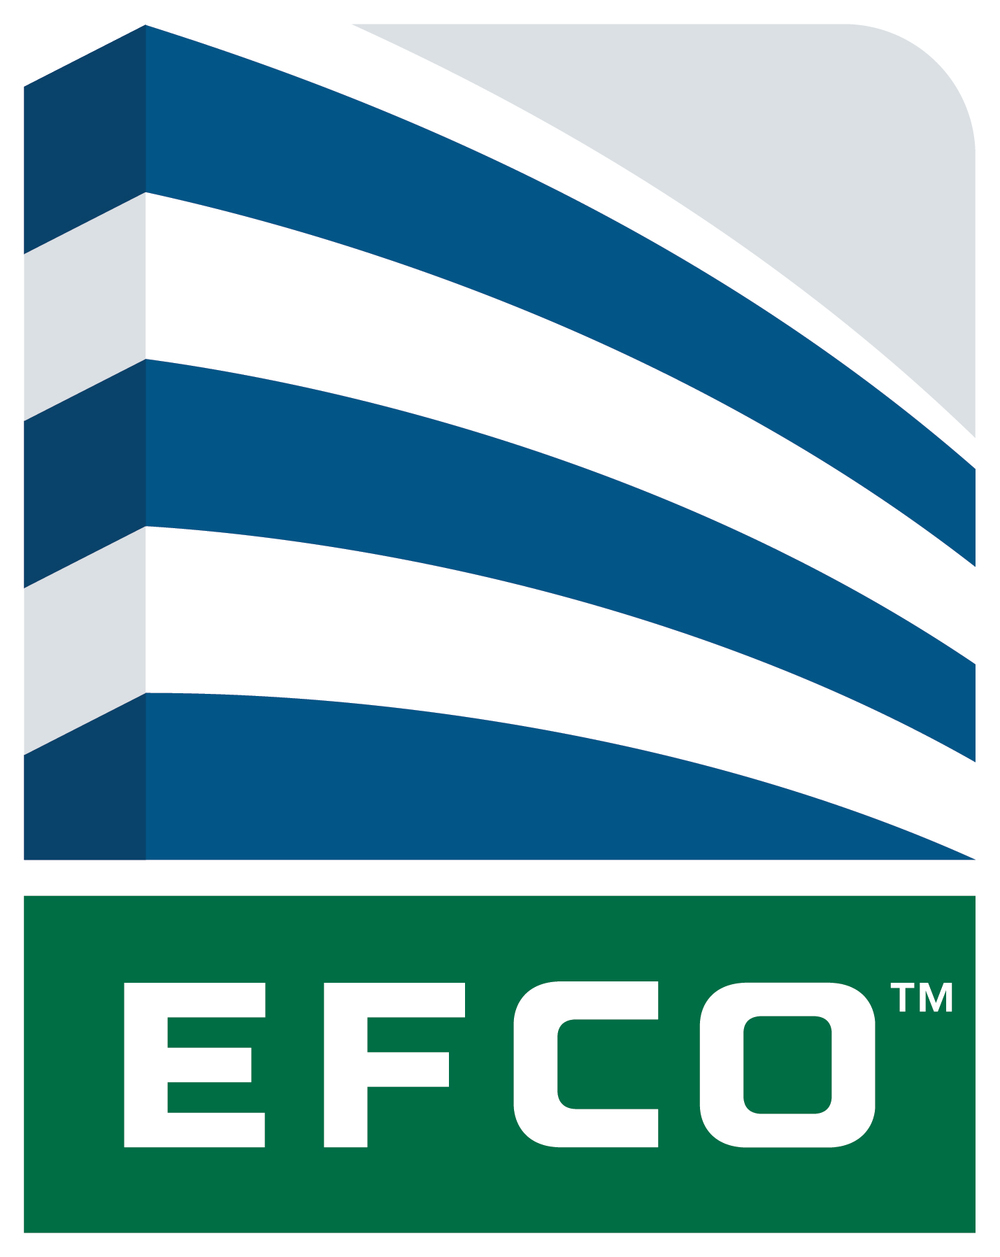 EFCO Corporation is a leading manufacturer of architectural aluminum window curtain wall storefront and entrance systems for commercial architectural ...